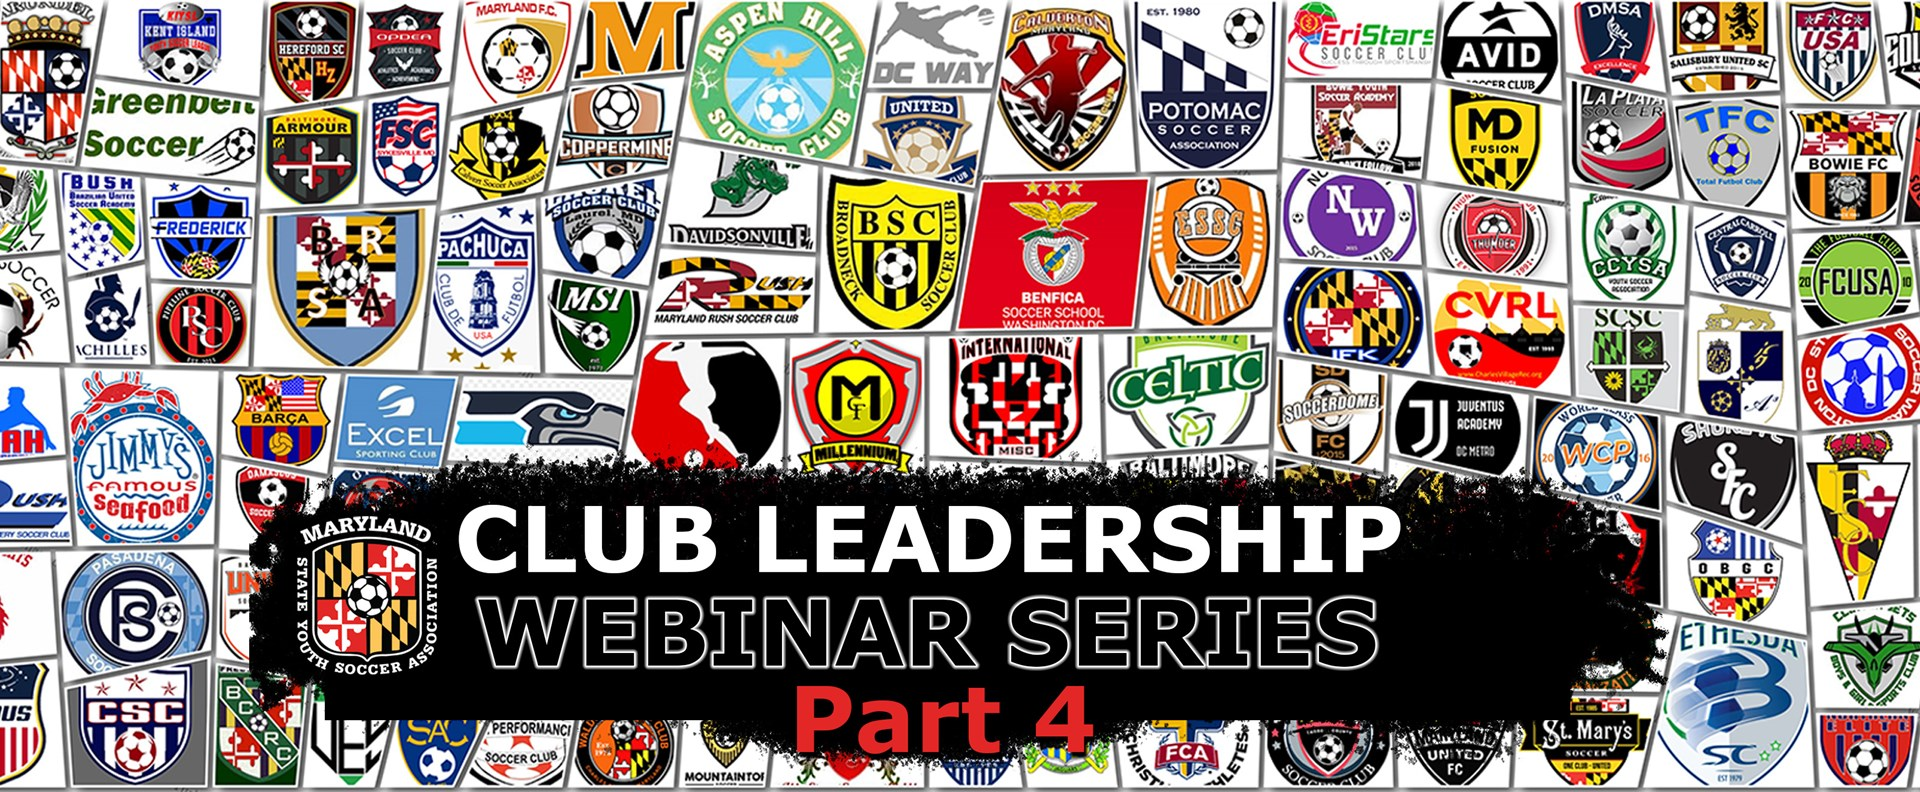 Club_Leadership_Webinar_Series_Thumbnail_template_copy